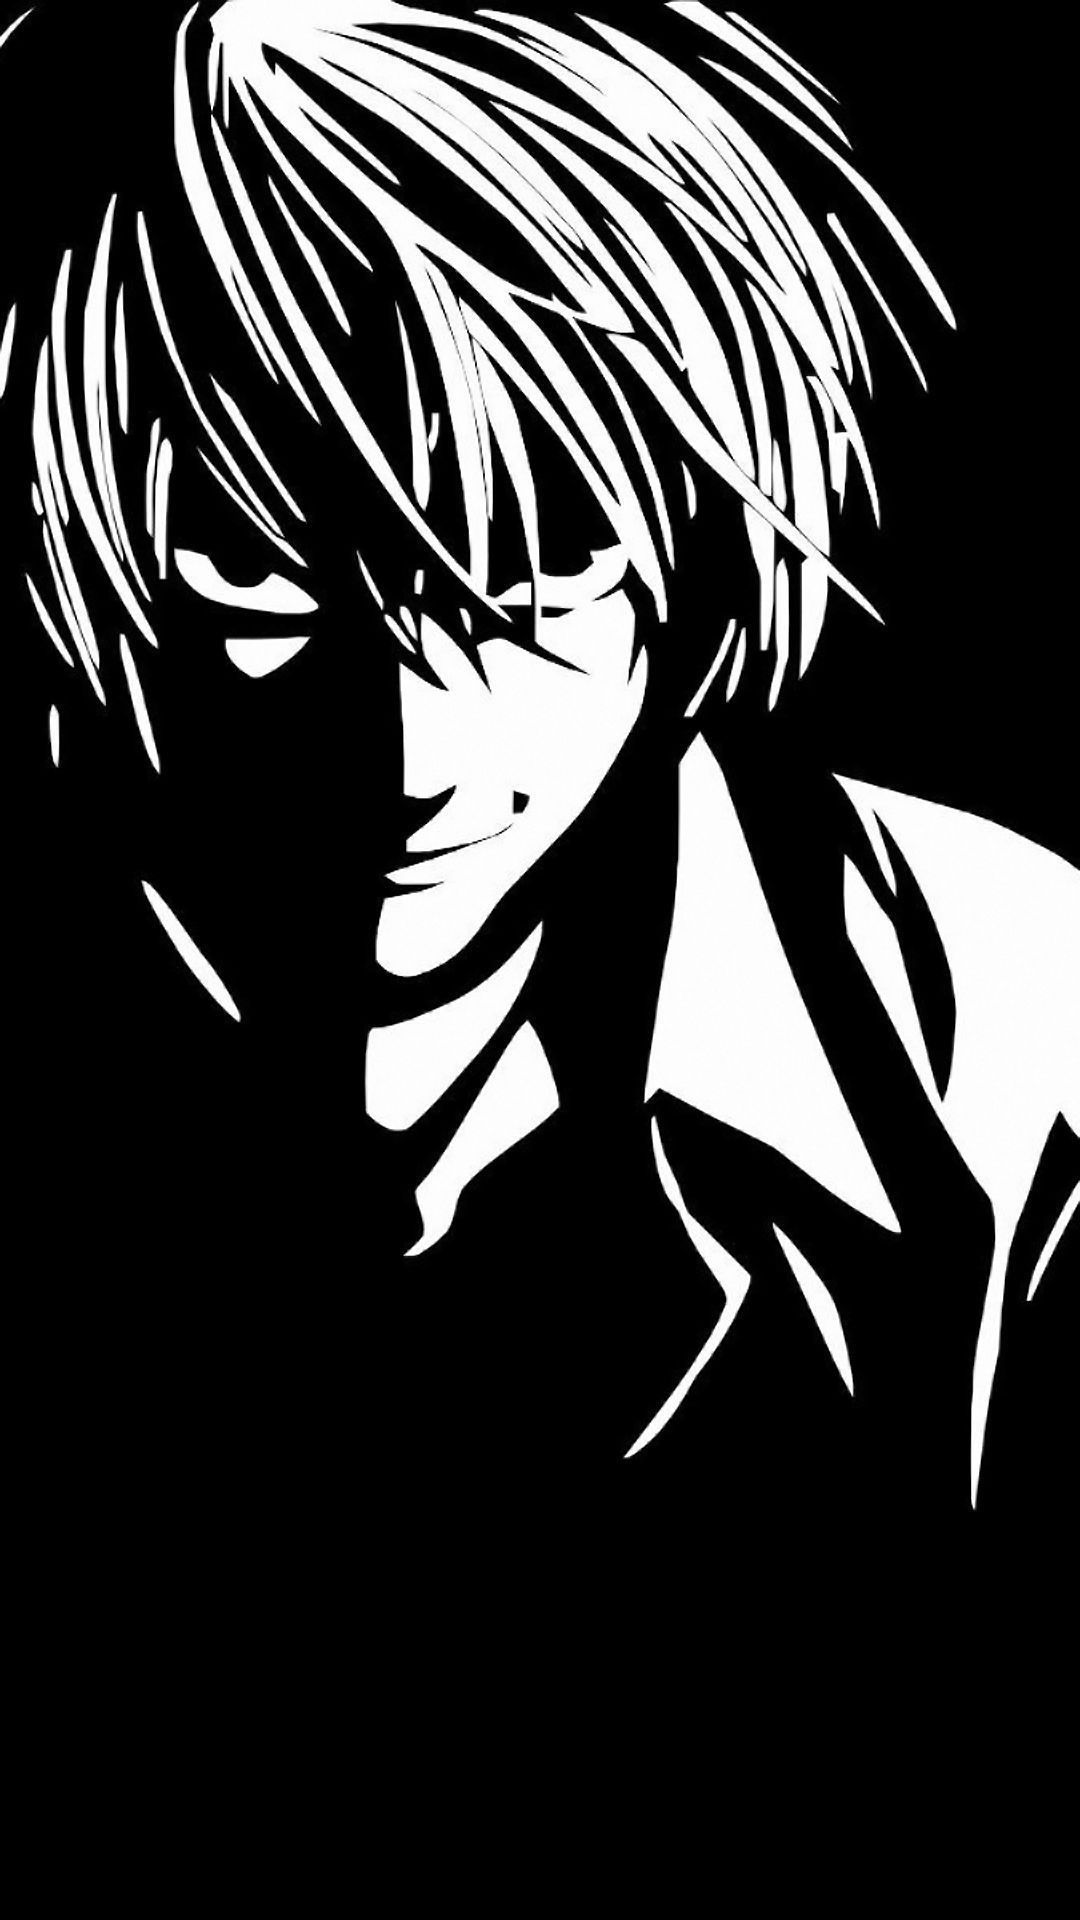 Check The Link To Download Hd Wallpapers Of Death Note And More Pc Phone Anime Death Note Author Takeshi Obata Tags Em 2020 Anime Death Note Desenhos